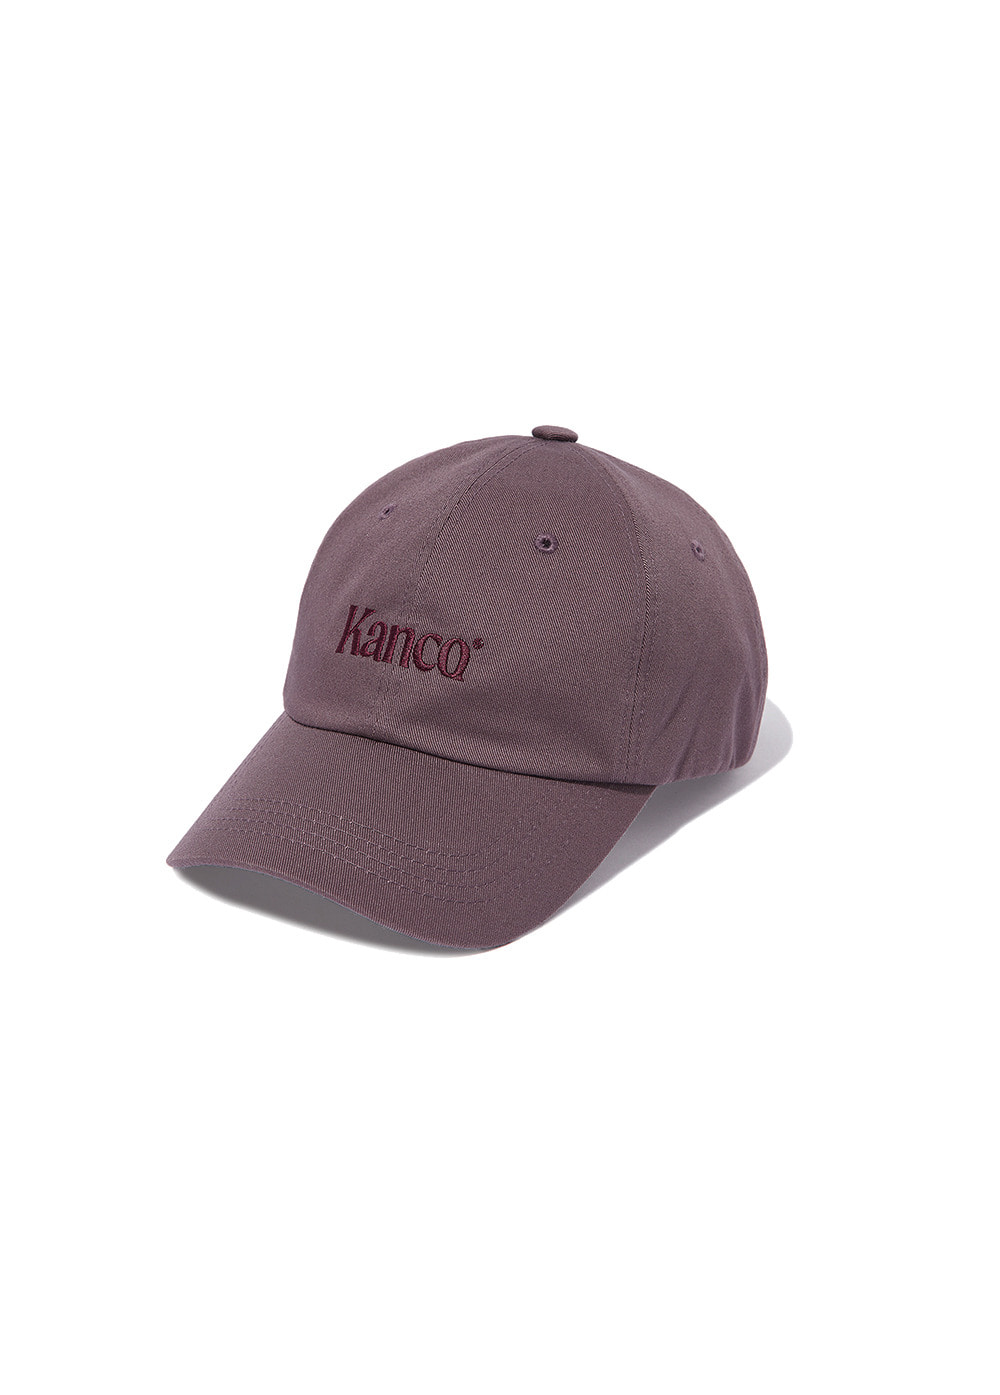 KANCO SERIF LOGO CAP purple